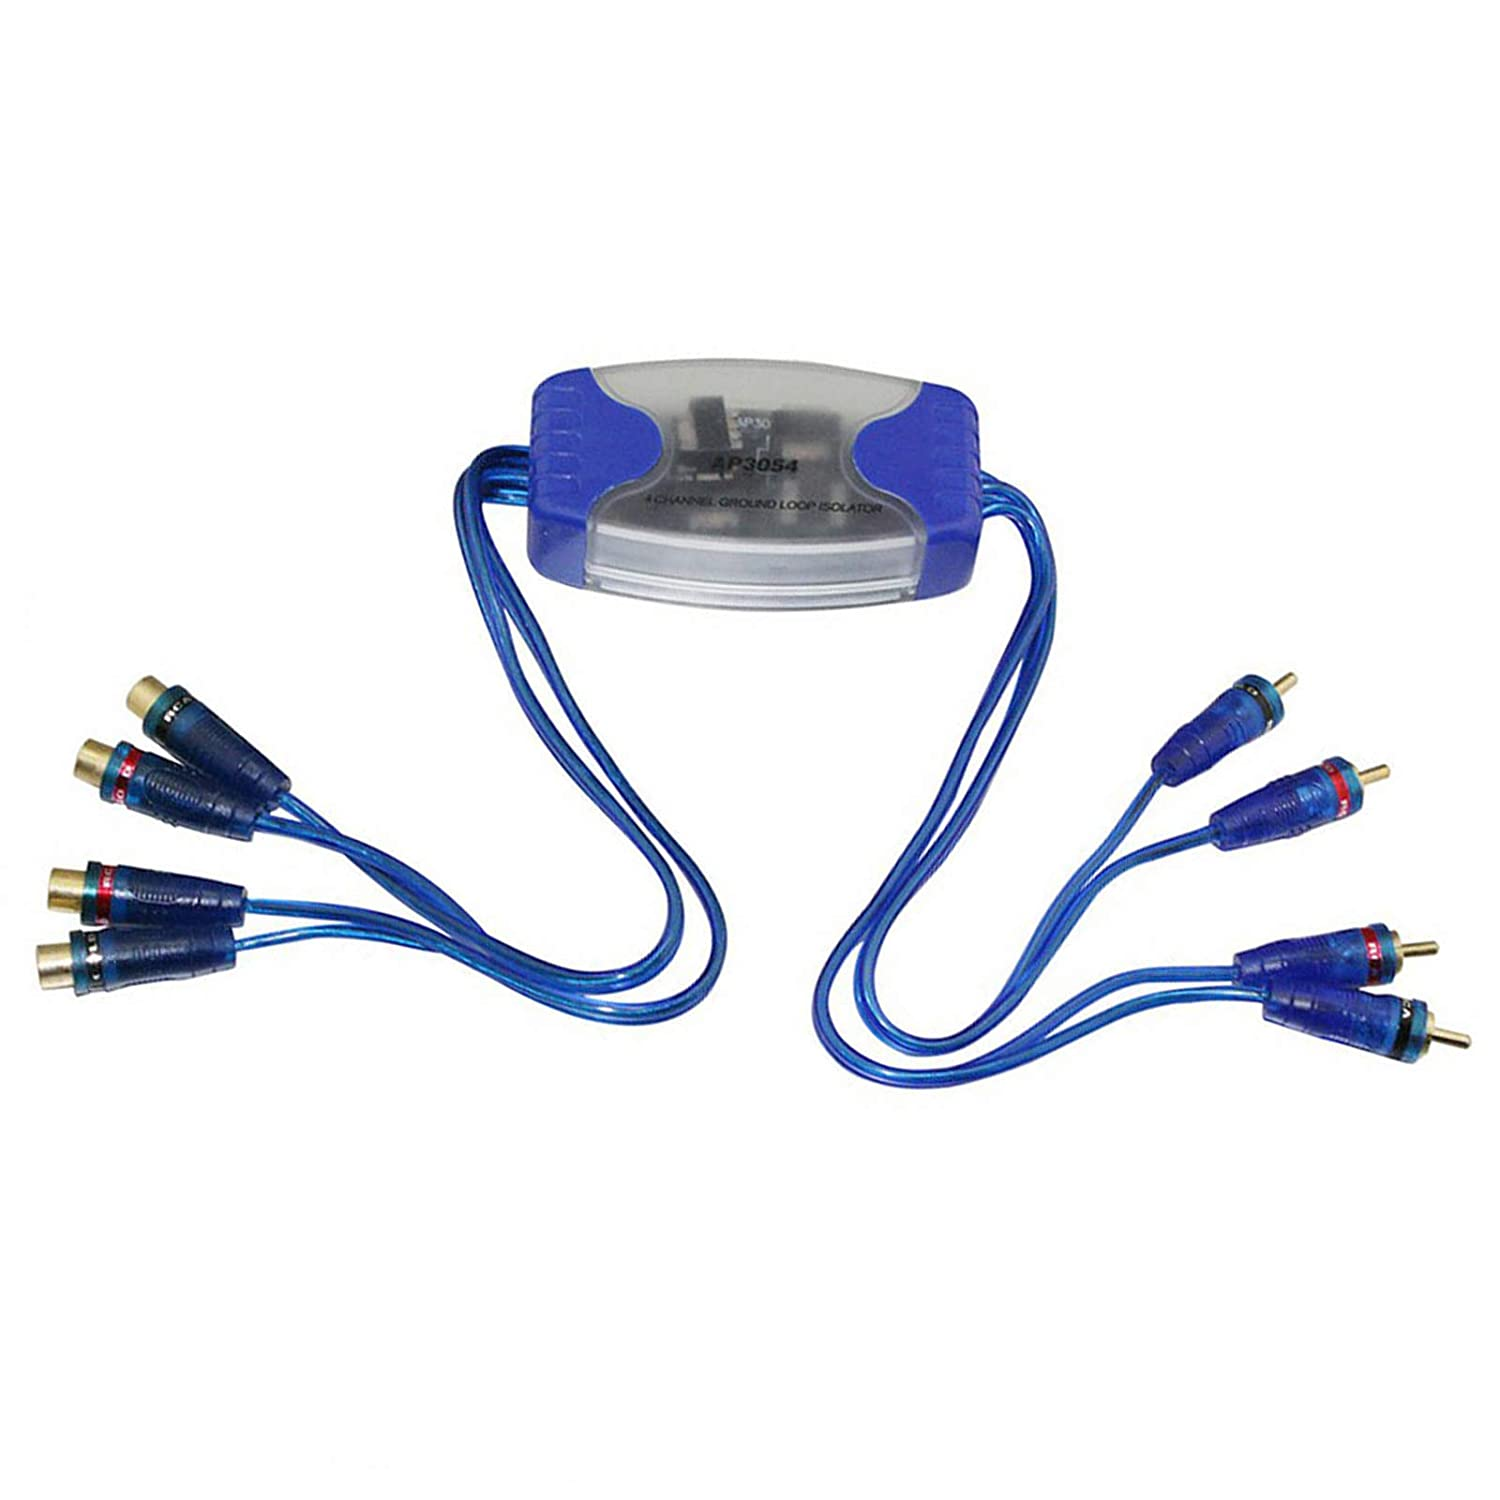 Soapow 4RCA Max 62% OFF Audio Noise Filter Ground Loop Stereo Isolator N Car Sale Special Price